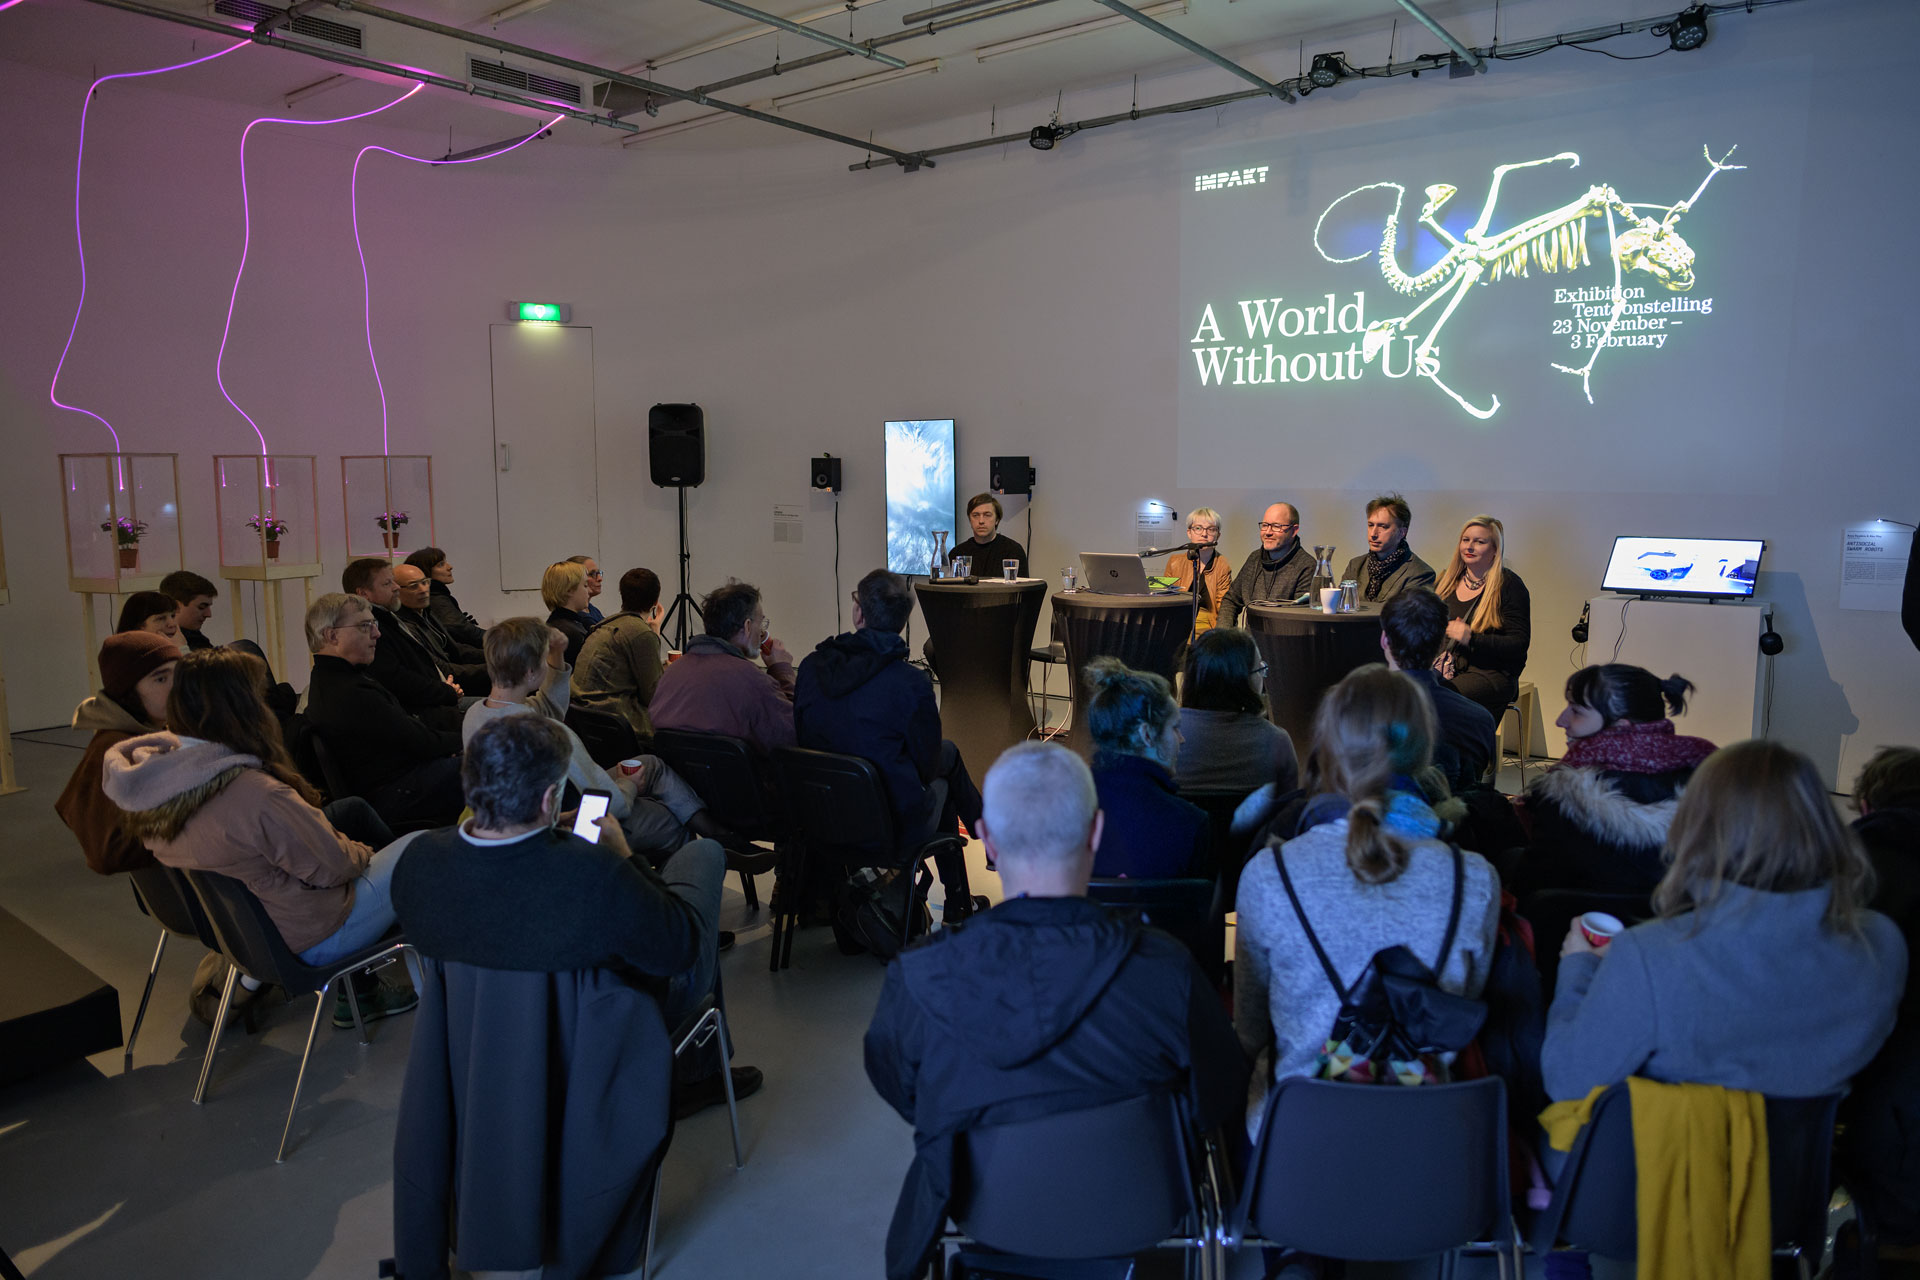 Impakt artist talk tentoonstelling  'a world without us'; www.im